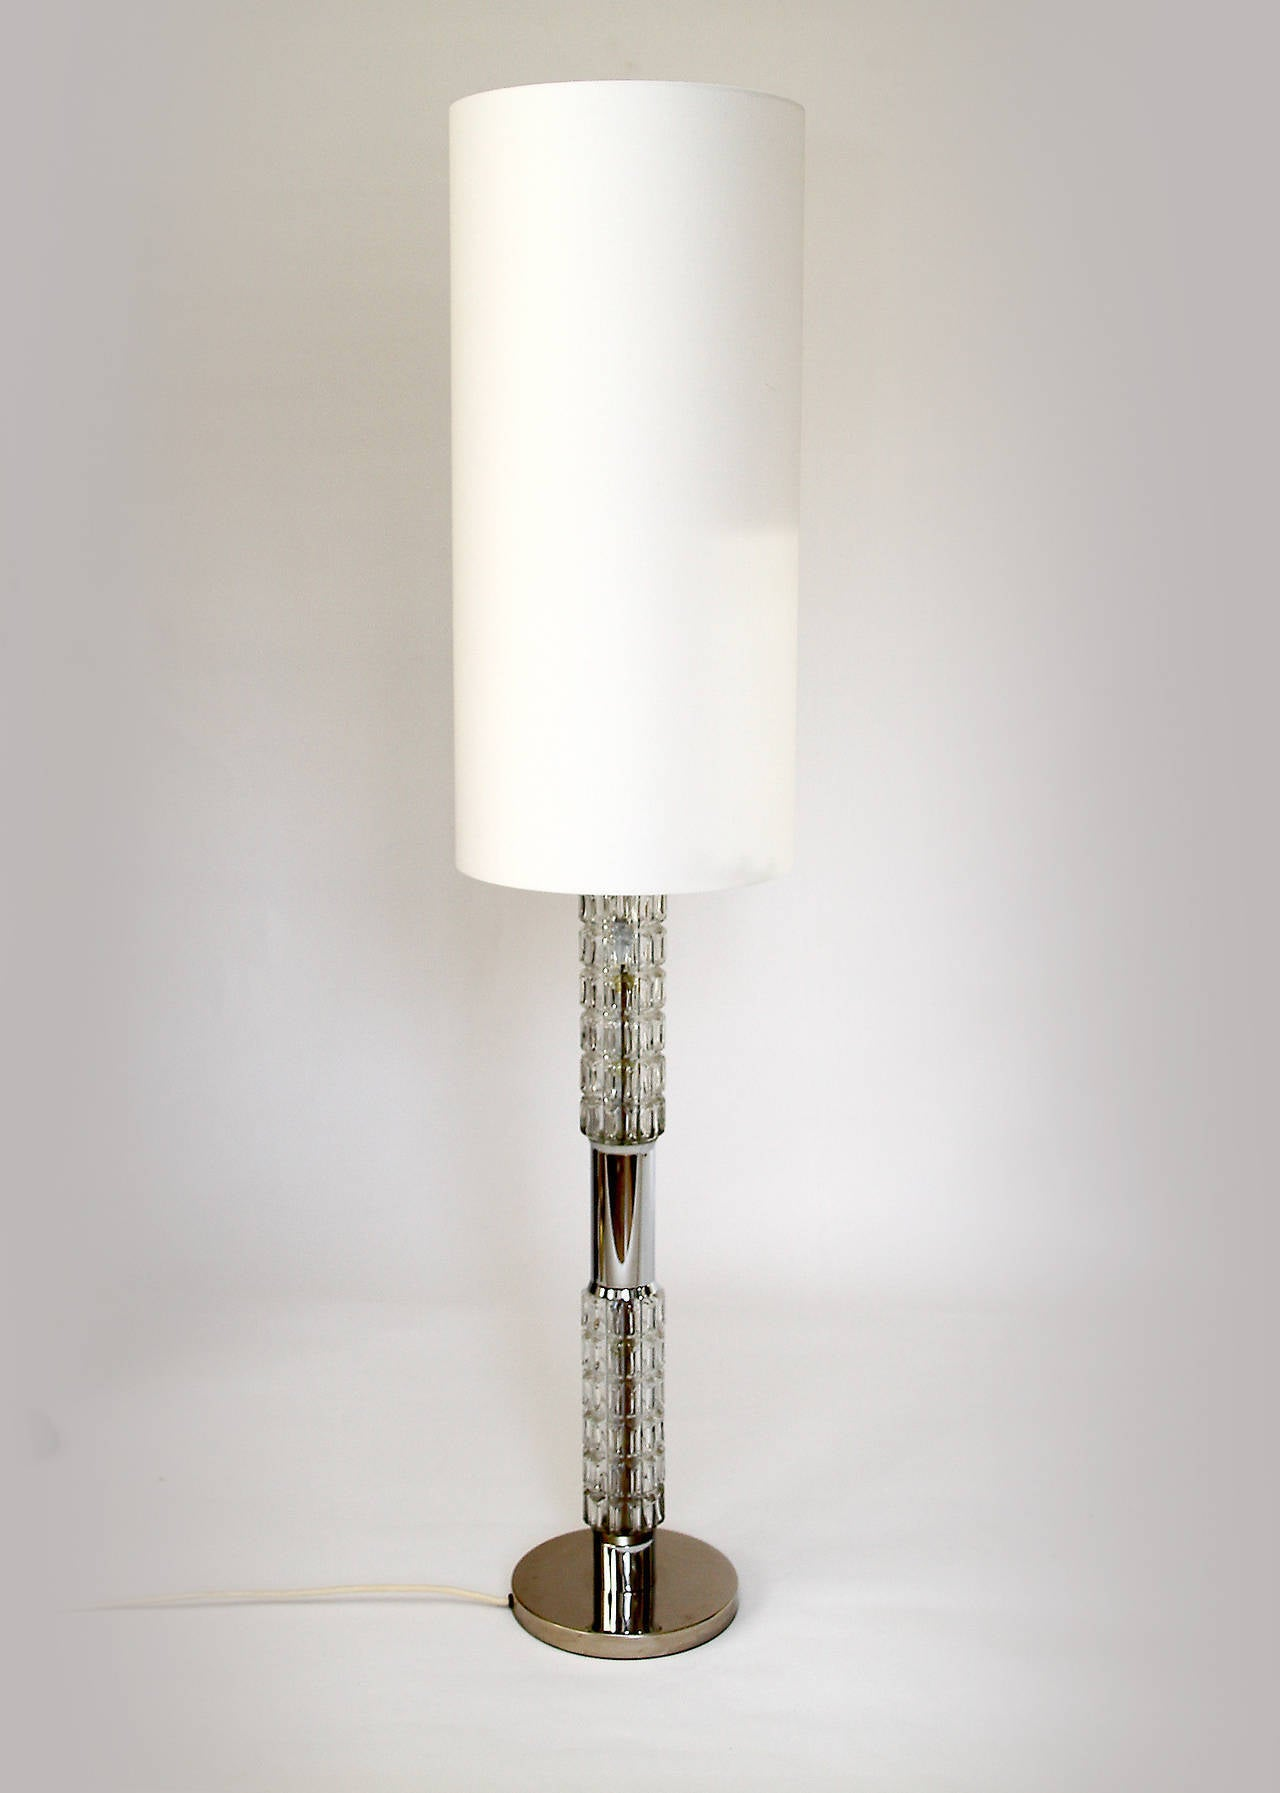 1970s richard essig floor or table lamp with illuminated for 1970s floor lamps